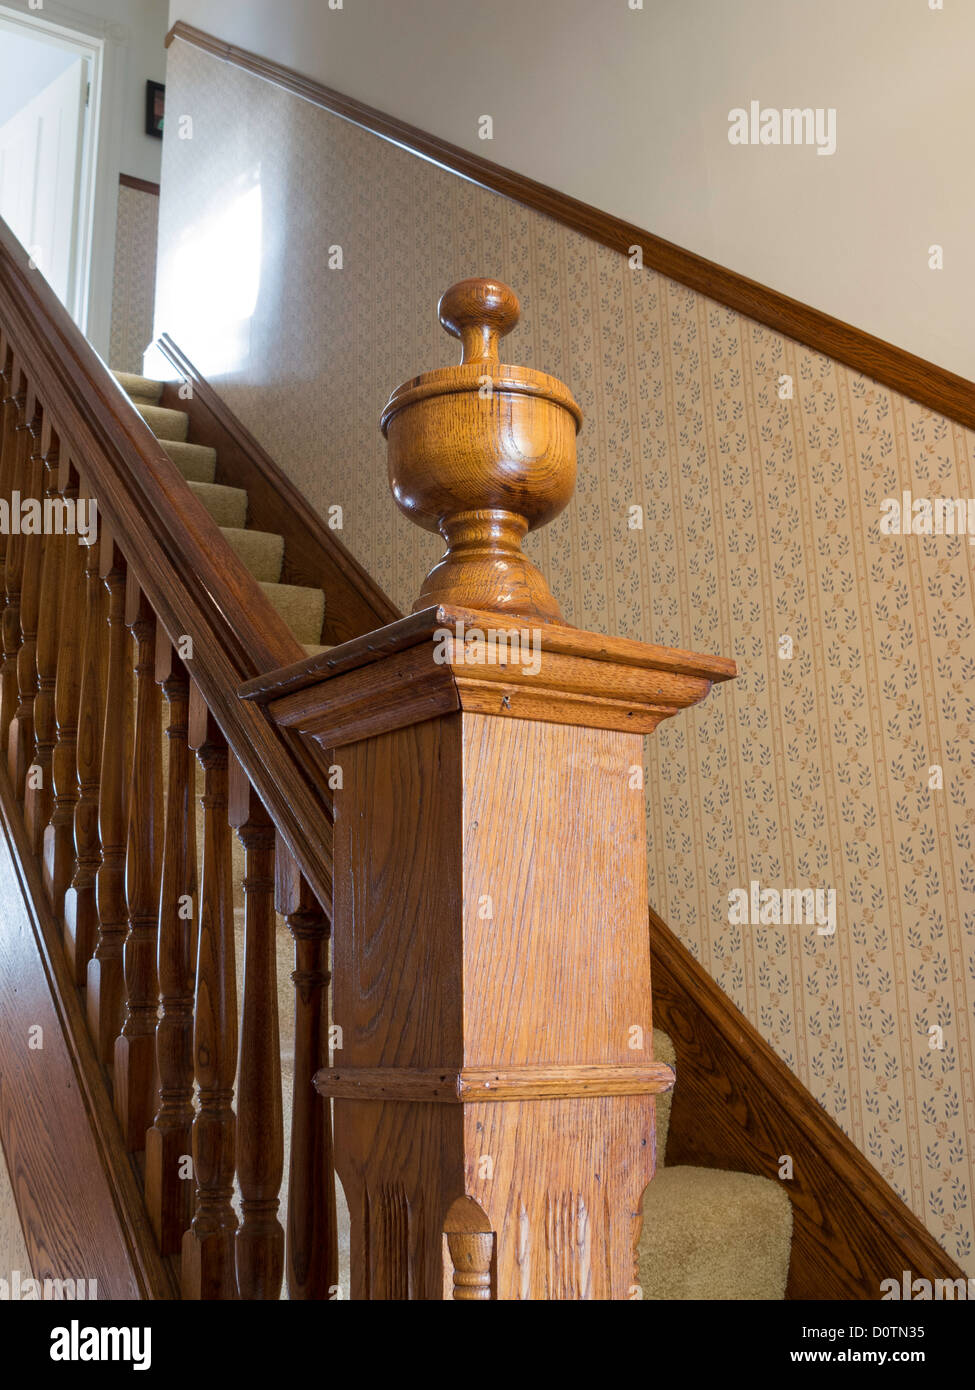 Decorative Finial On Newel Post ,Balustrade And Staircase, Residential House